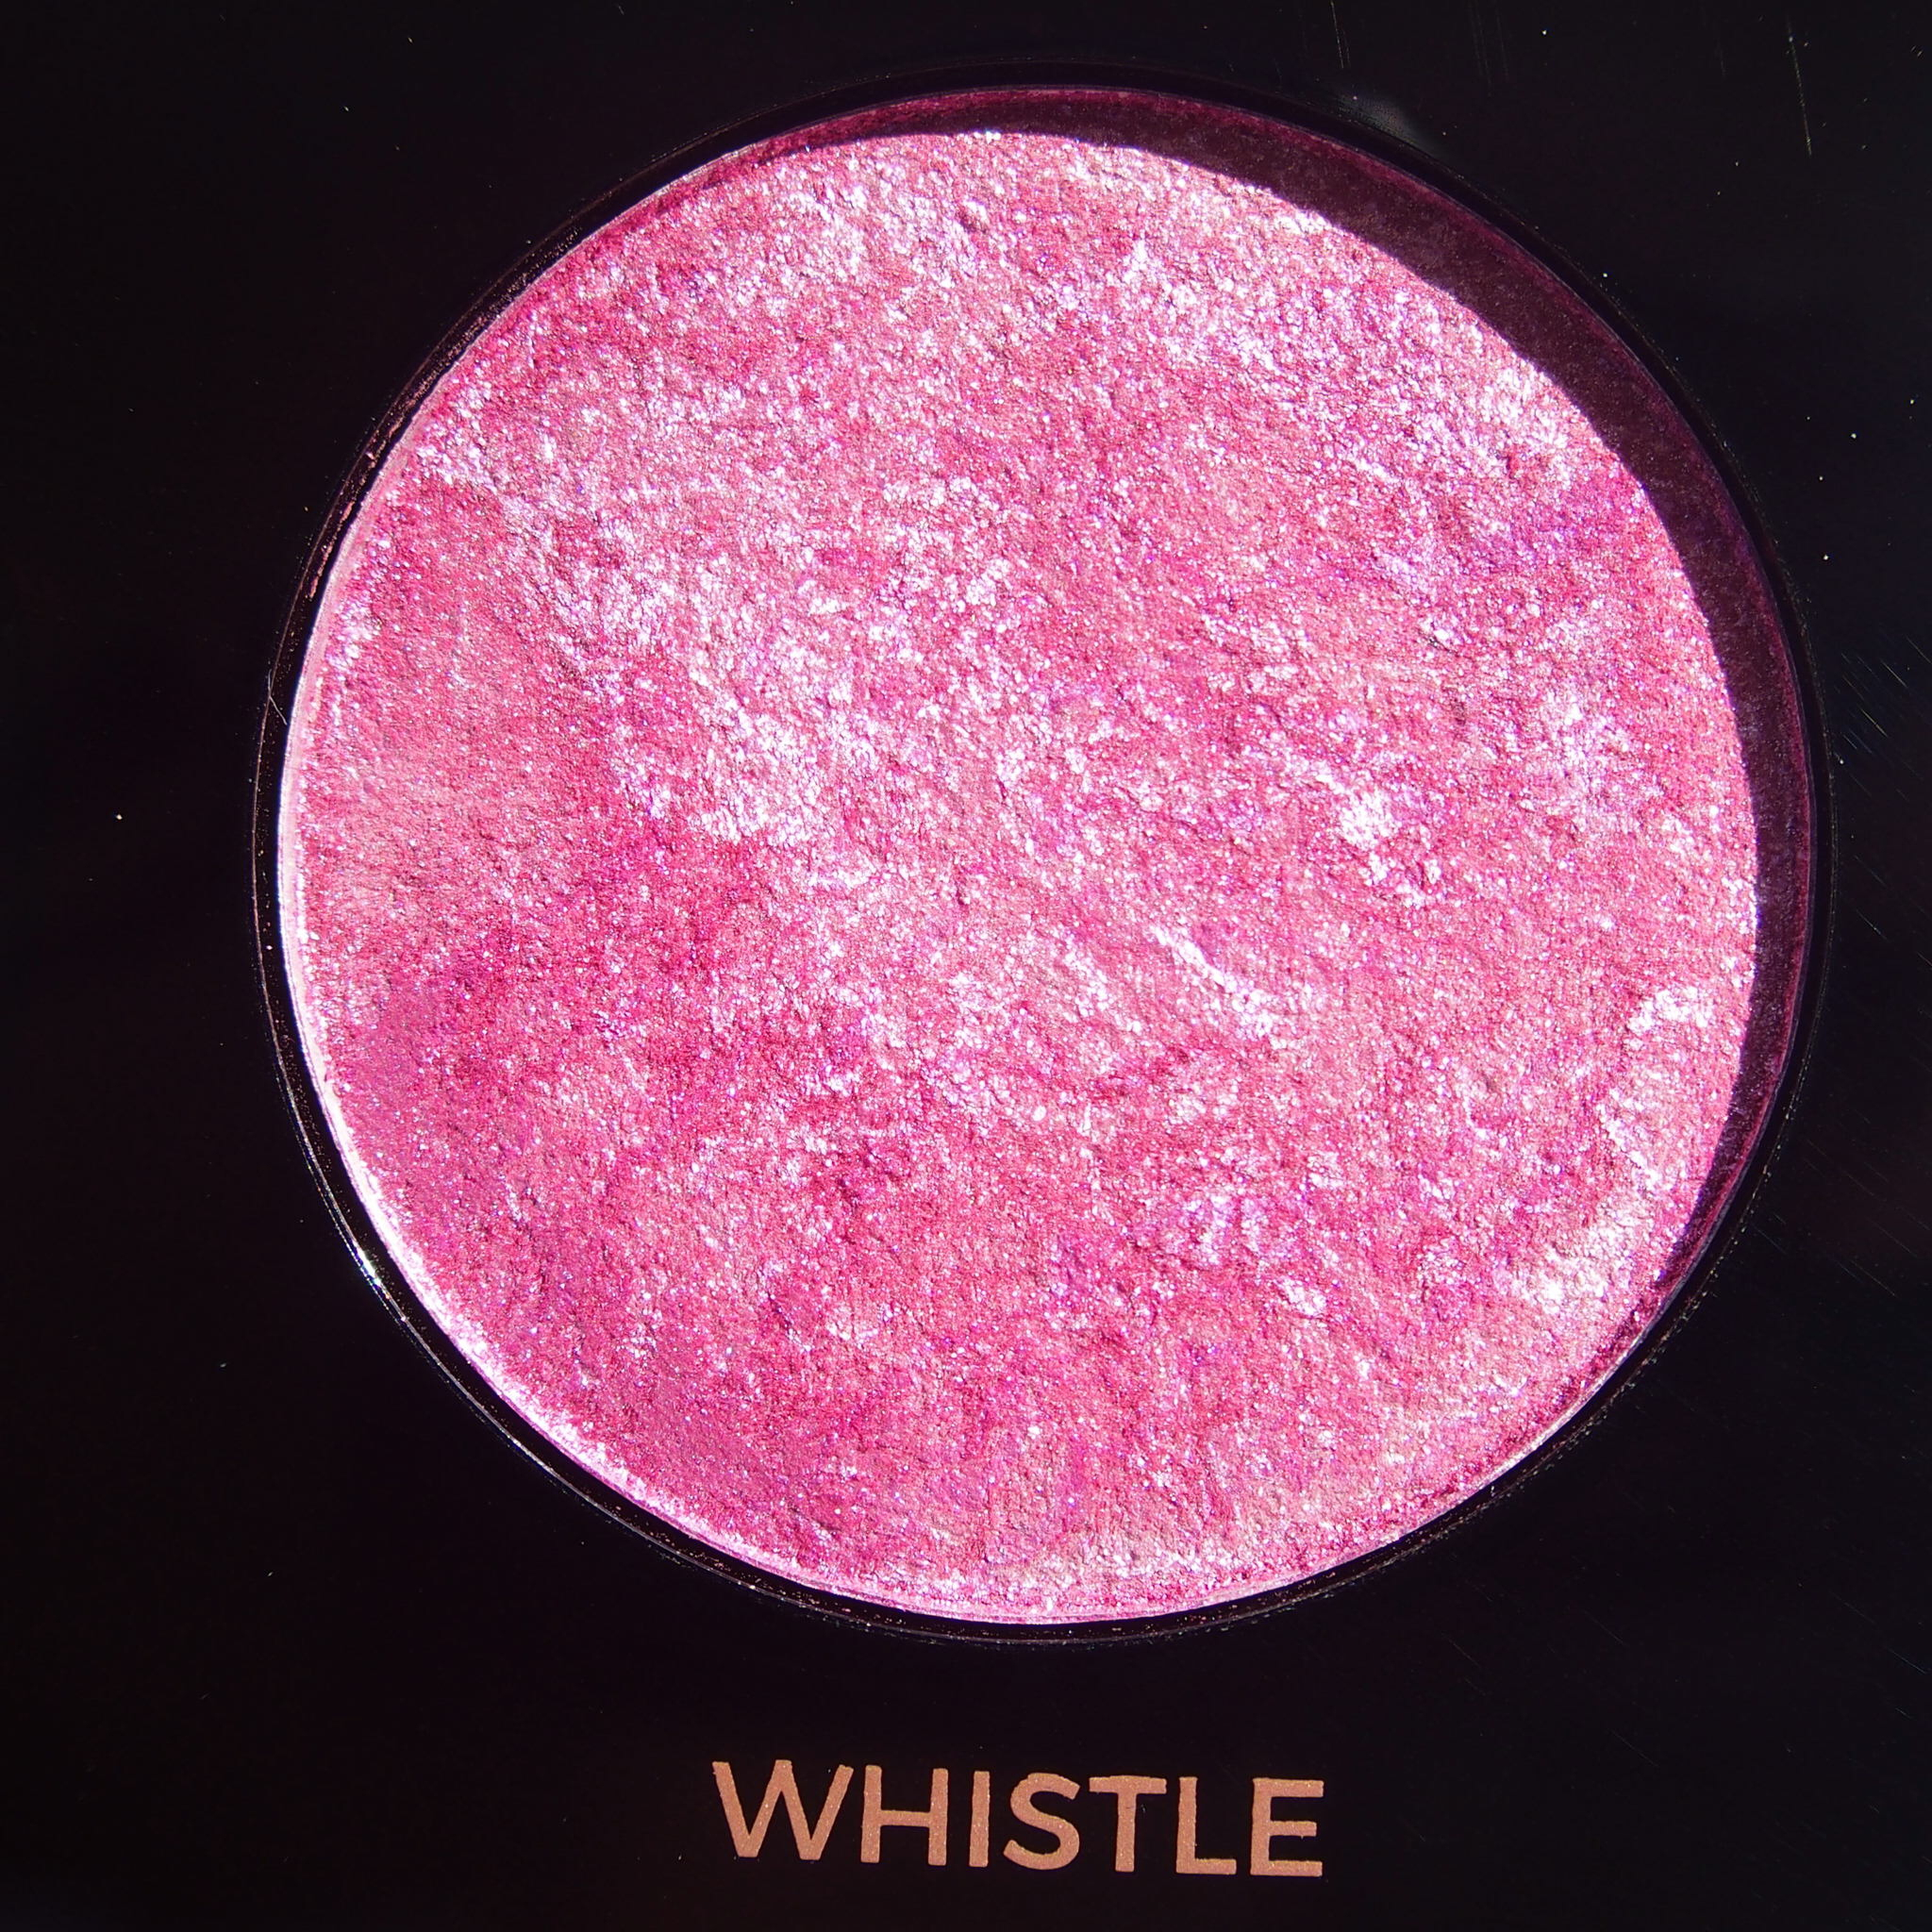 Makeup Revolution Pro HD Amplified Get Baked Palette swatches - Whistle